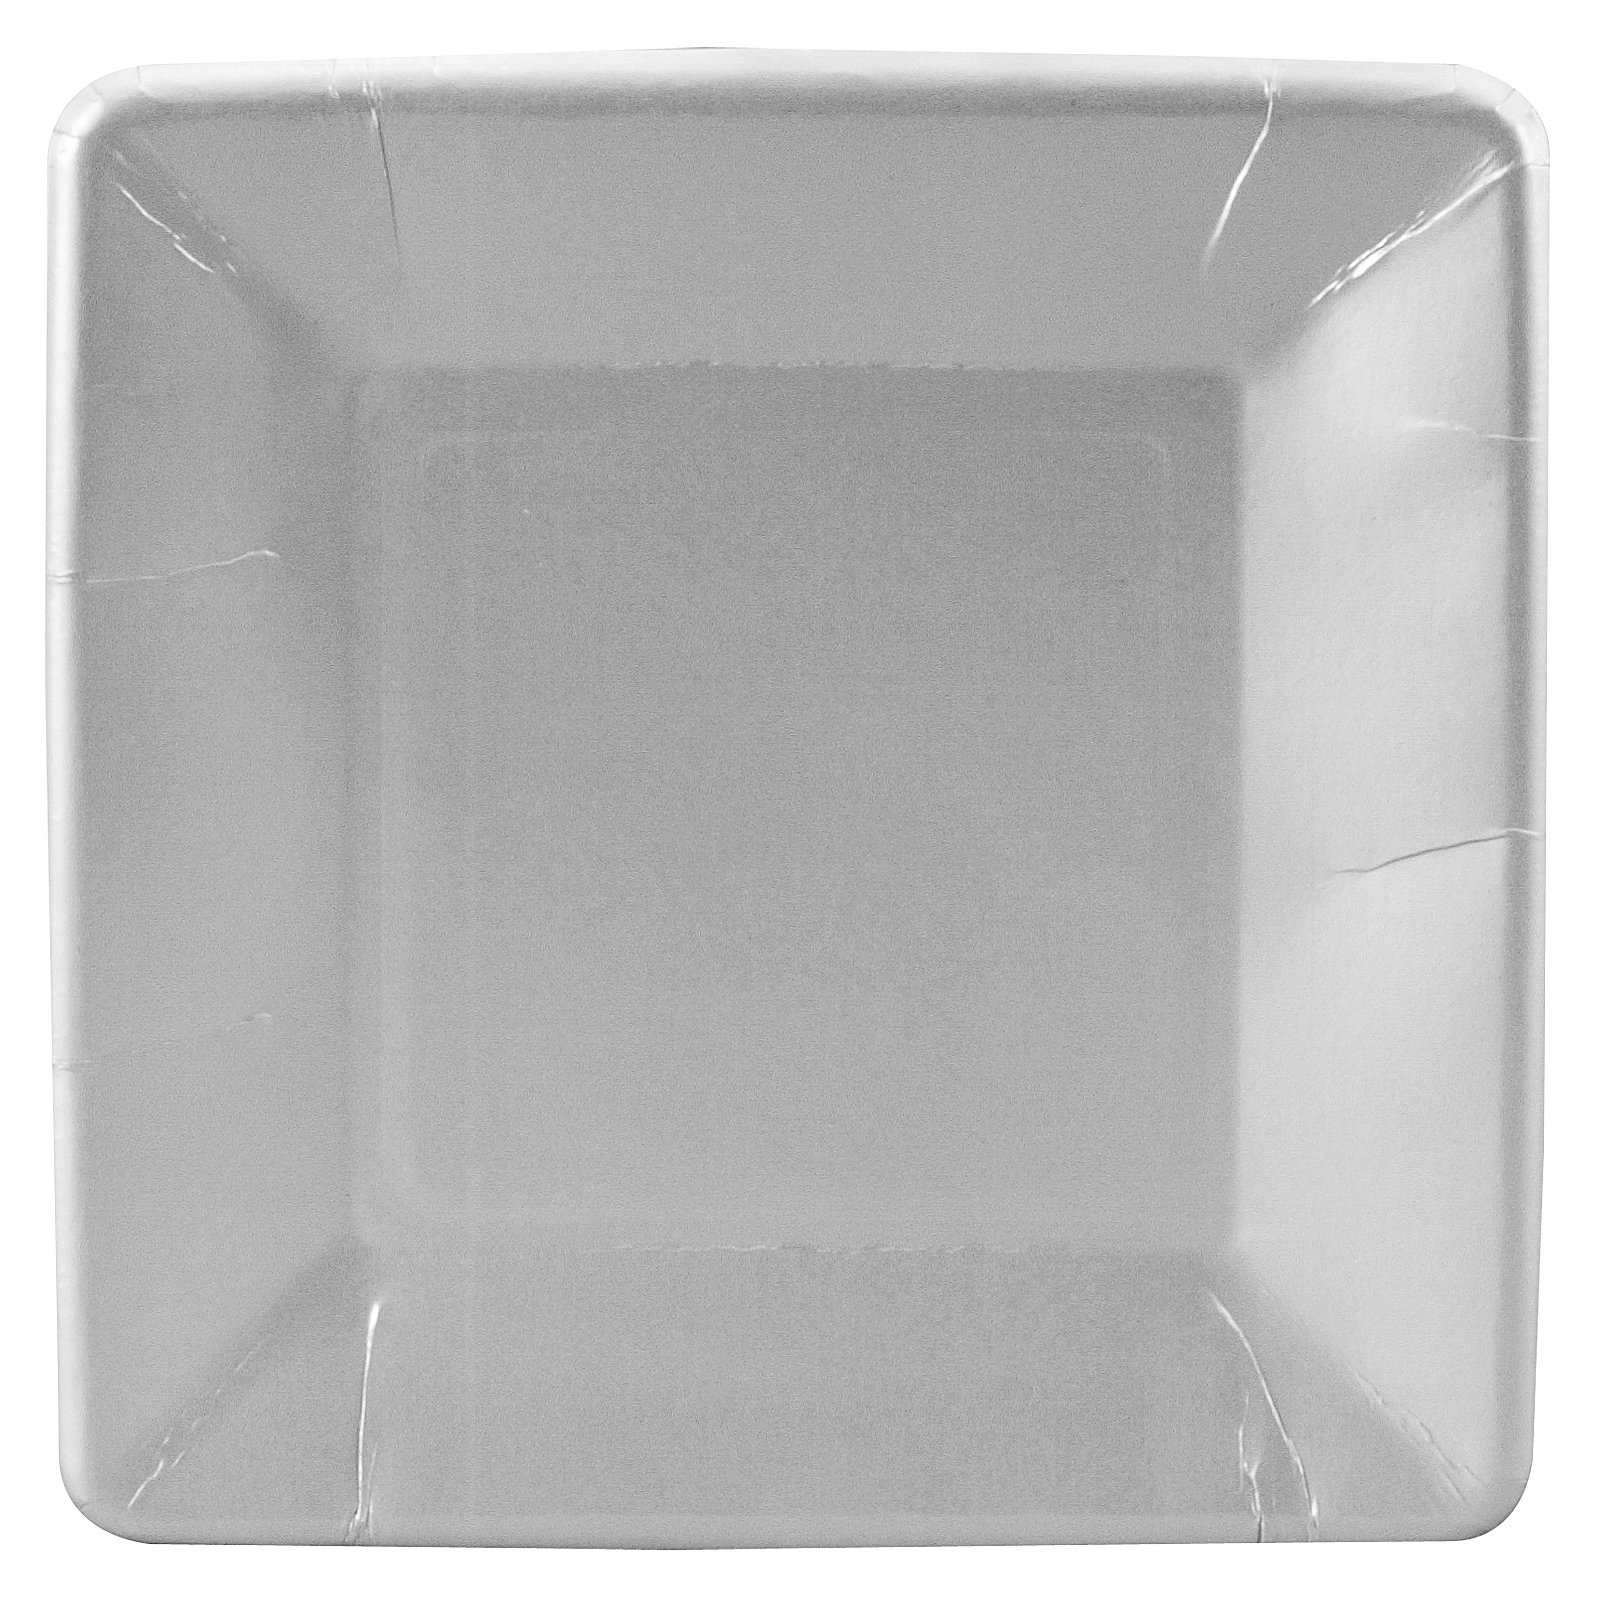 Shimmering Silver (Silver) Square Dessert Plates (18 count)